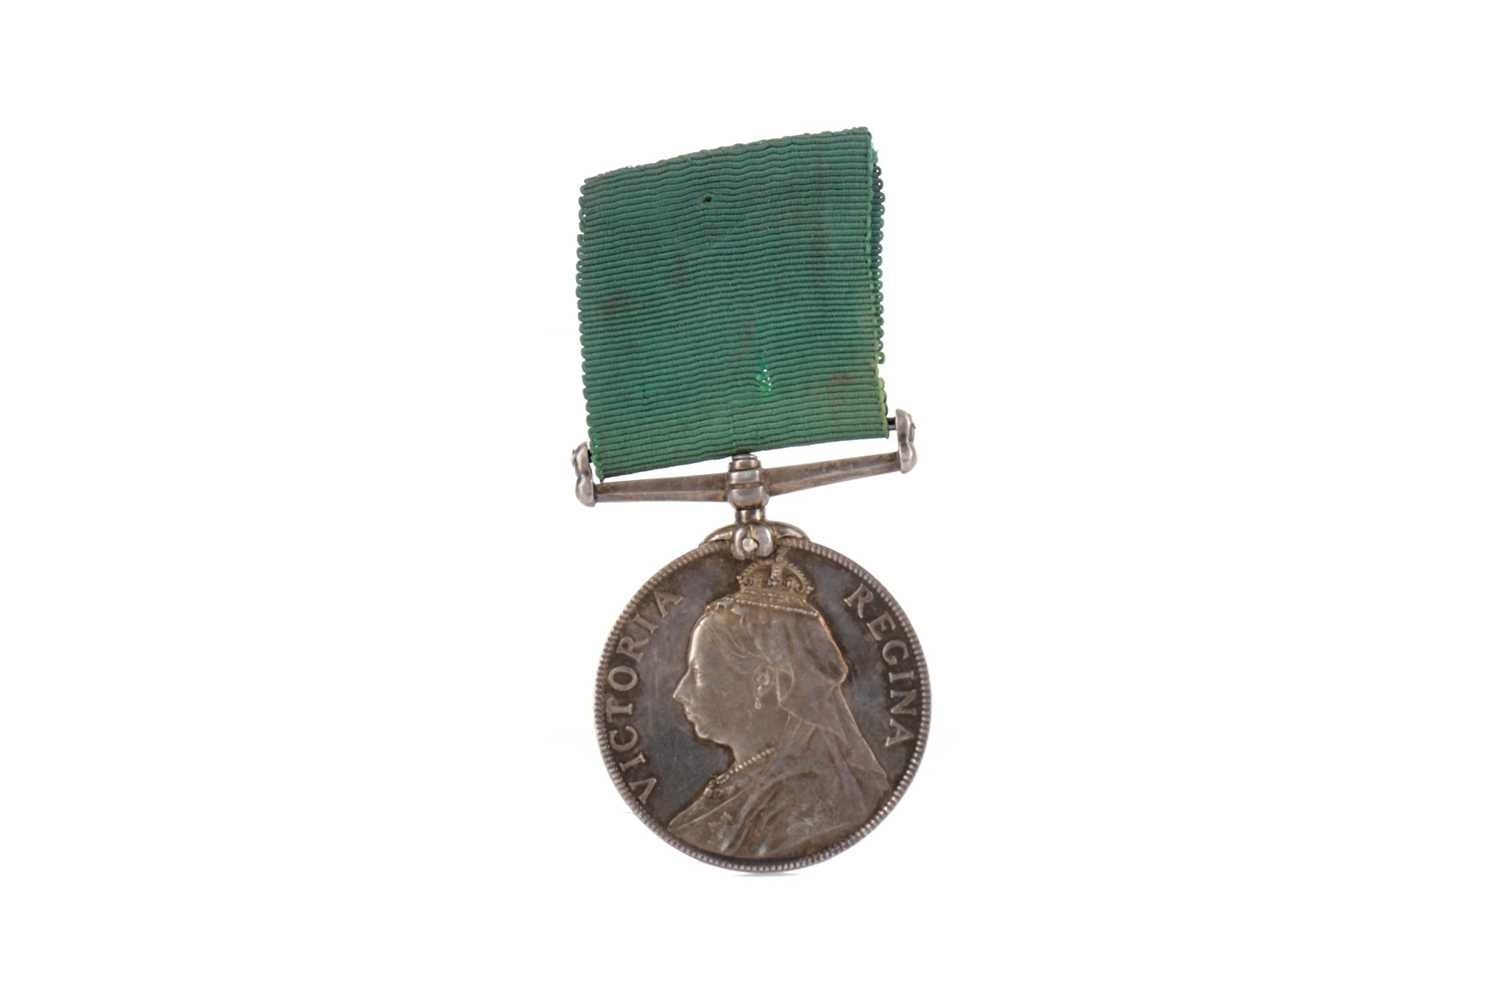 Lot 1385 - A VICTORIAN MEDAL FOR LONG SERVICE IN THE VOLUNTEER FORCE